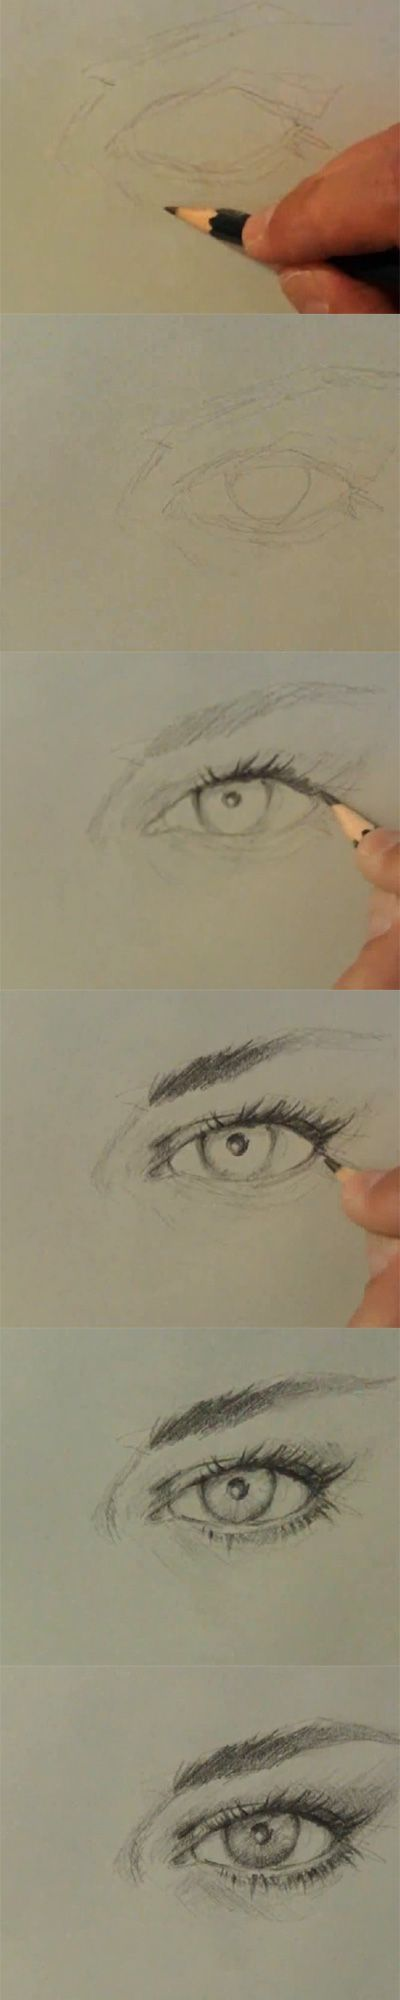 How to draw an eye. by deanne